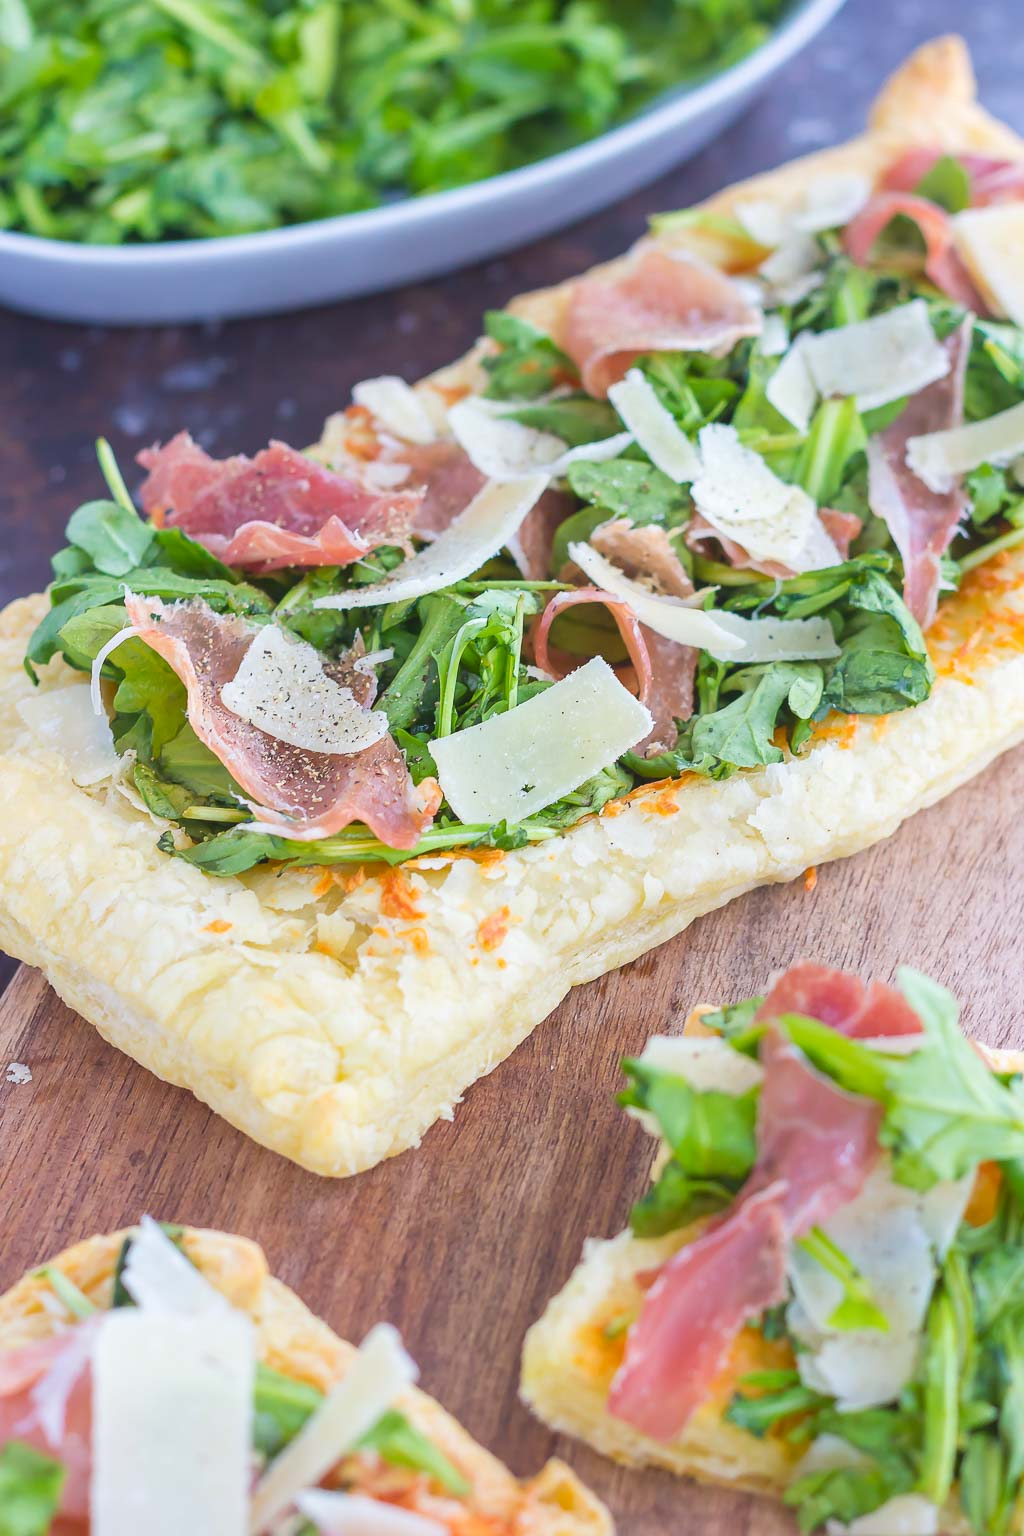 This Arugula and Prosciutto Puff Pastry Pizza is easy to make and ready in about 20 minutes. Puff pastry dough is drizzled with olive oil, and then topped with mozzarella cheese, fresh arugula, salty prosciutto and some shaved Parmesan cheese. Simple, fresh, and bursting with flavor, this lighter pizza is perfect for busy weeknights and is sure to be a mealtime winner